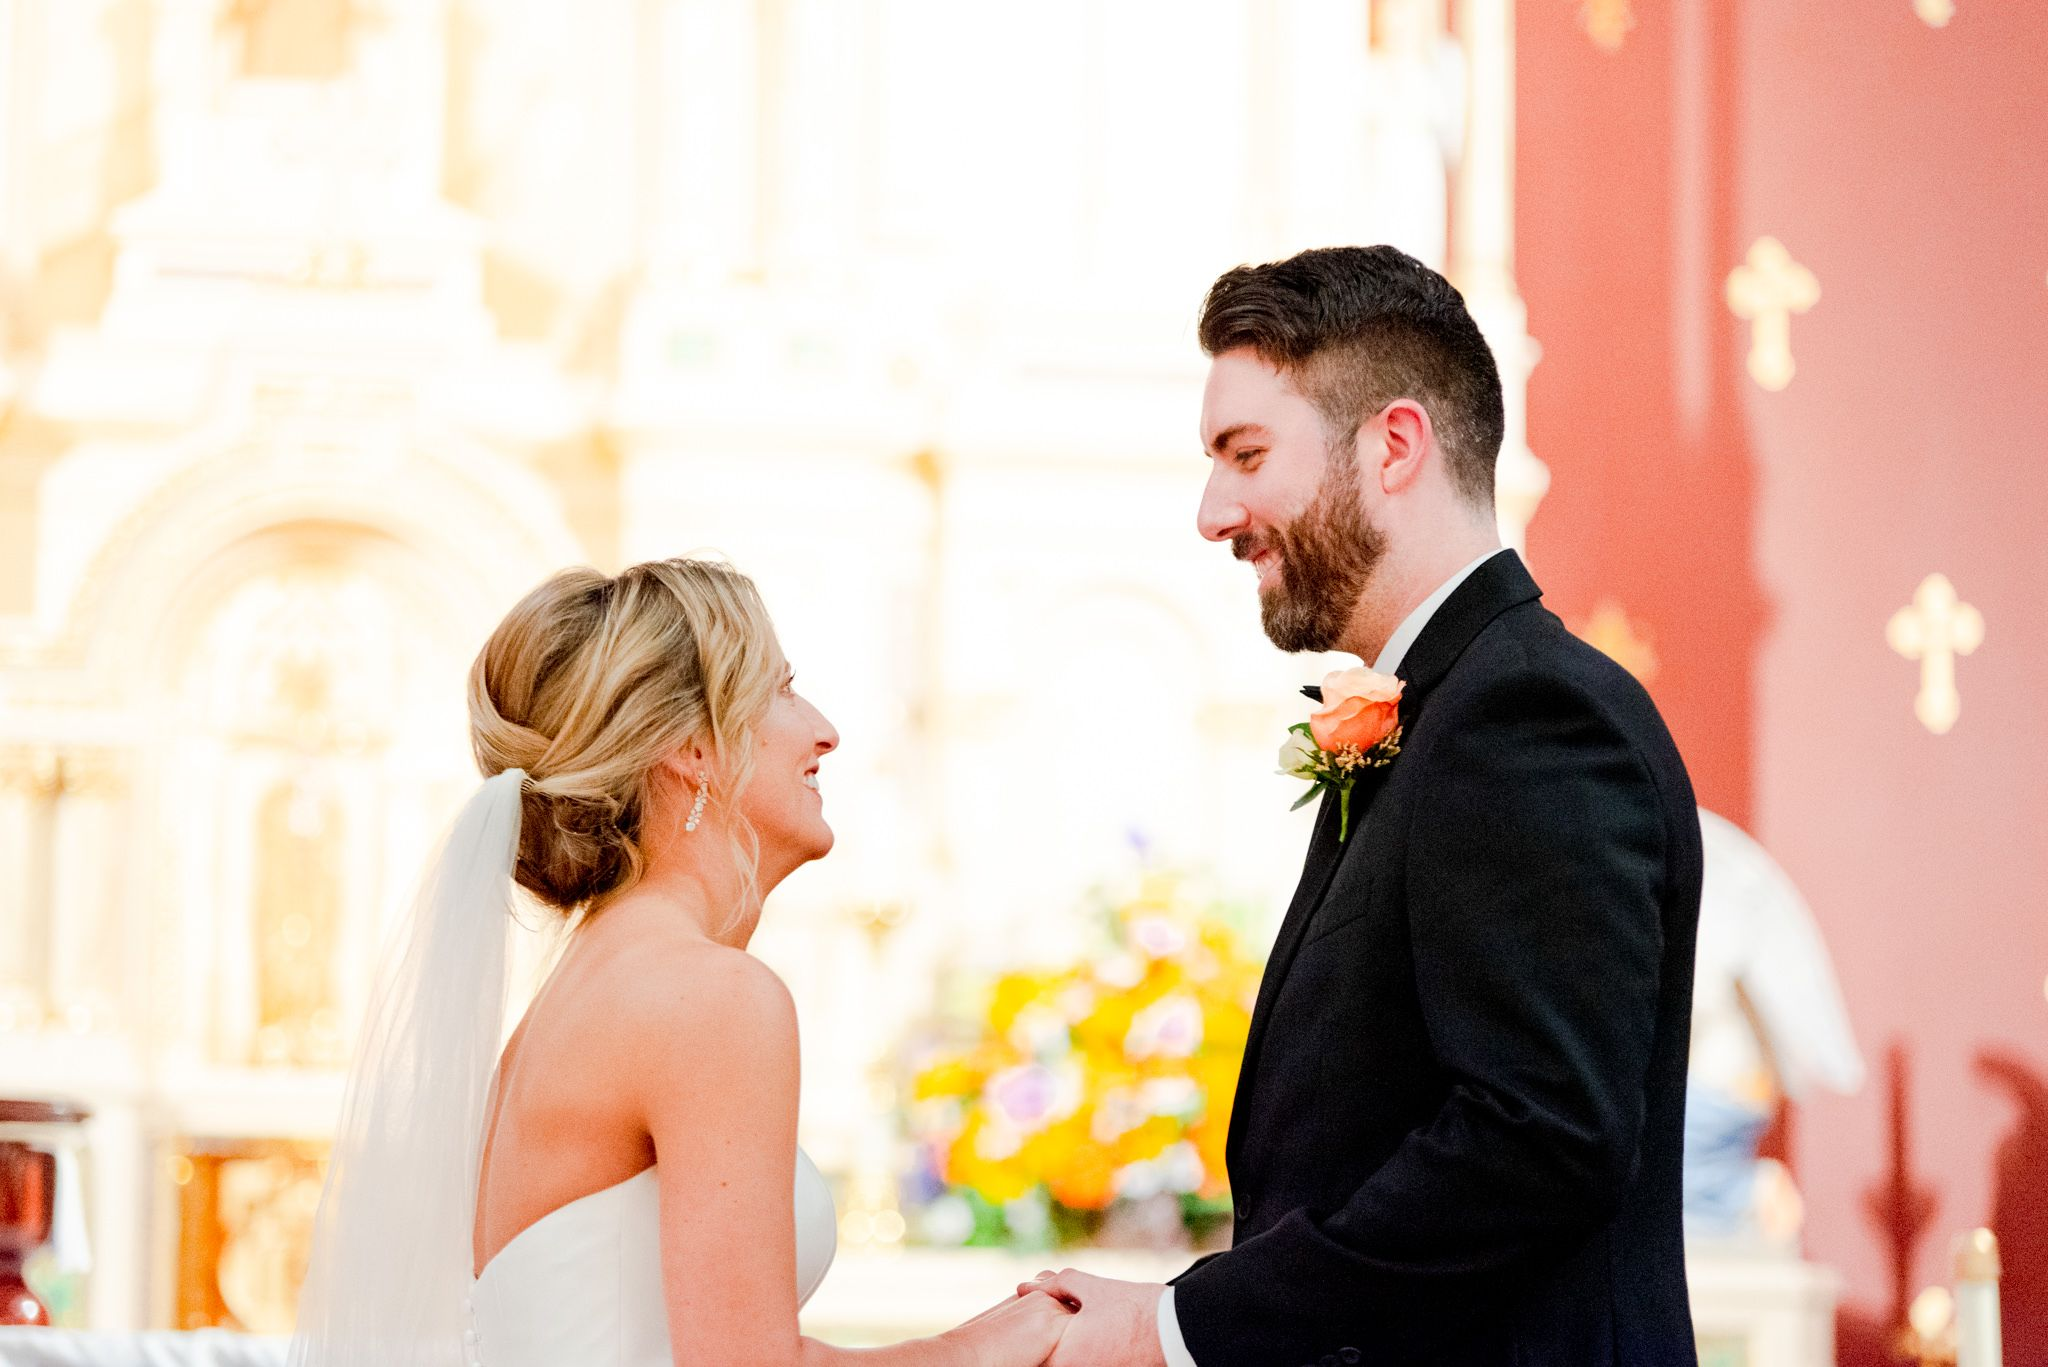 blonde bride with updo and veil smiling at her groom with brunette hair and beard in church